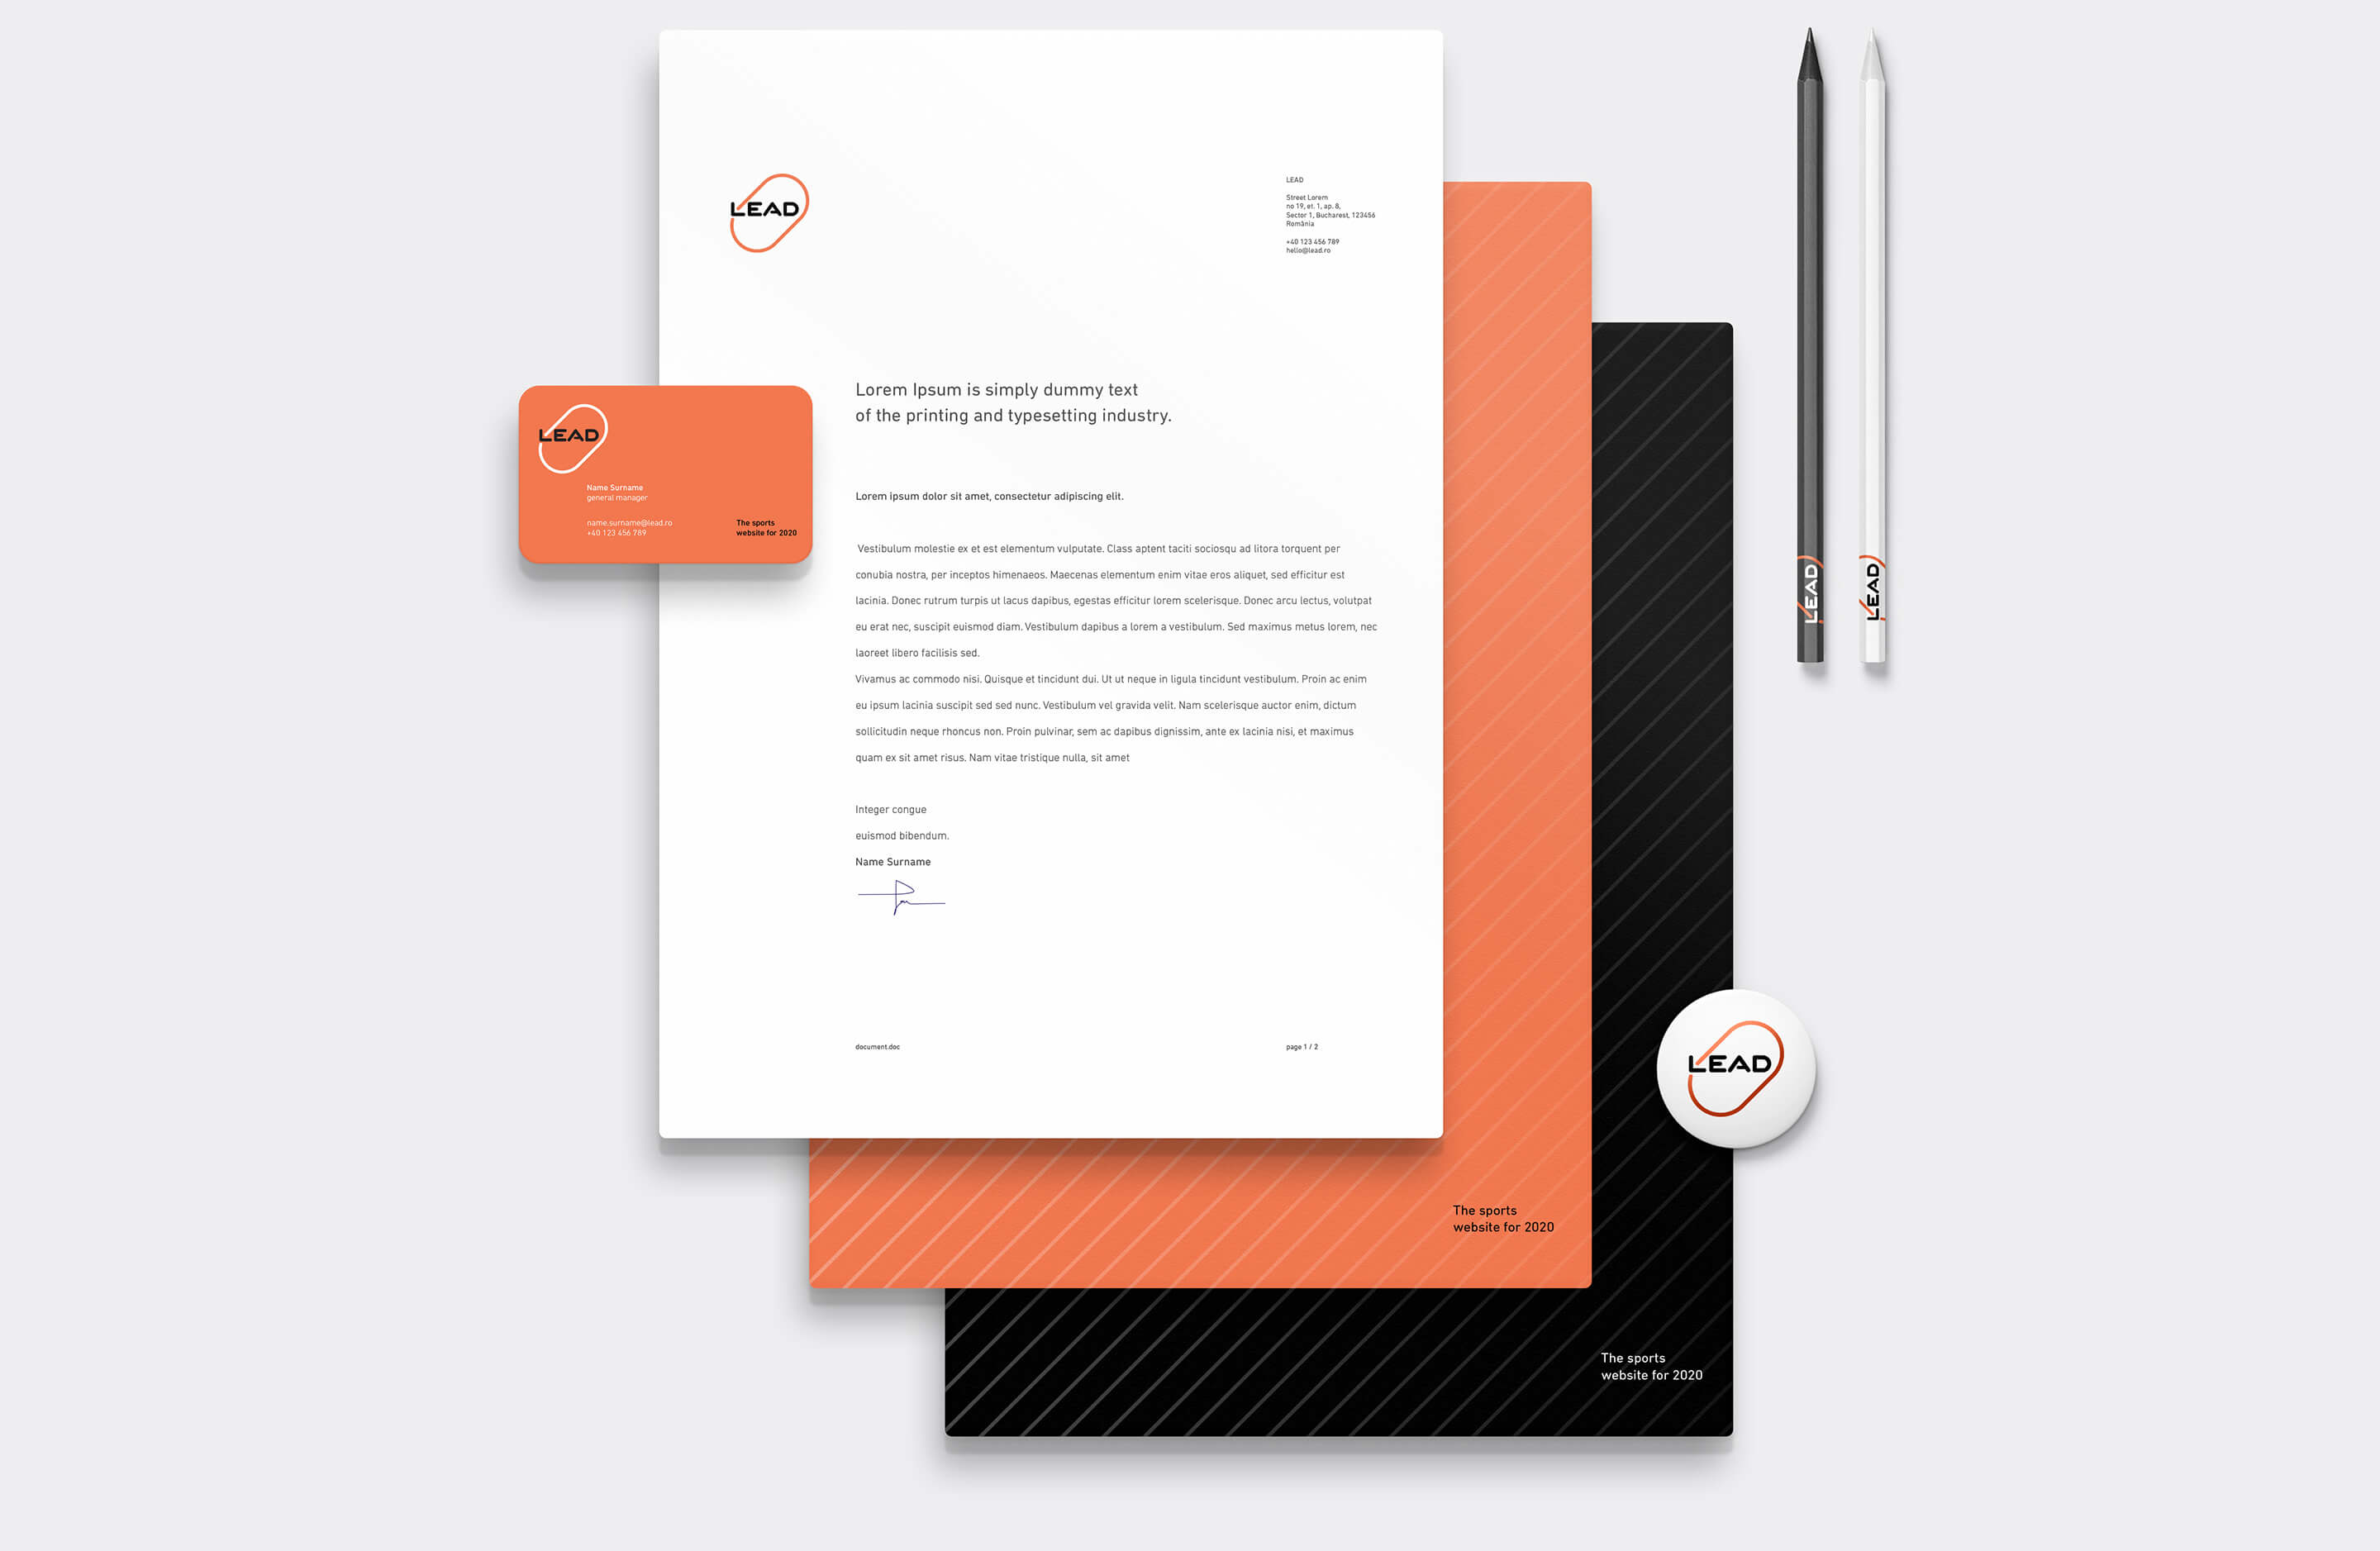 Lead stationery